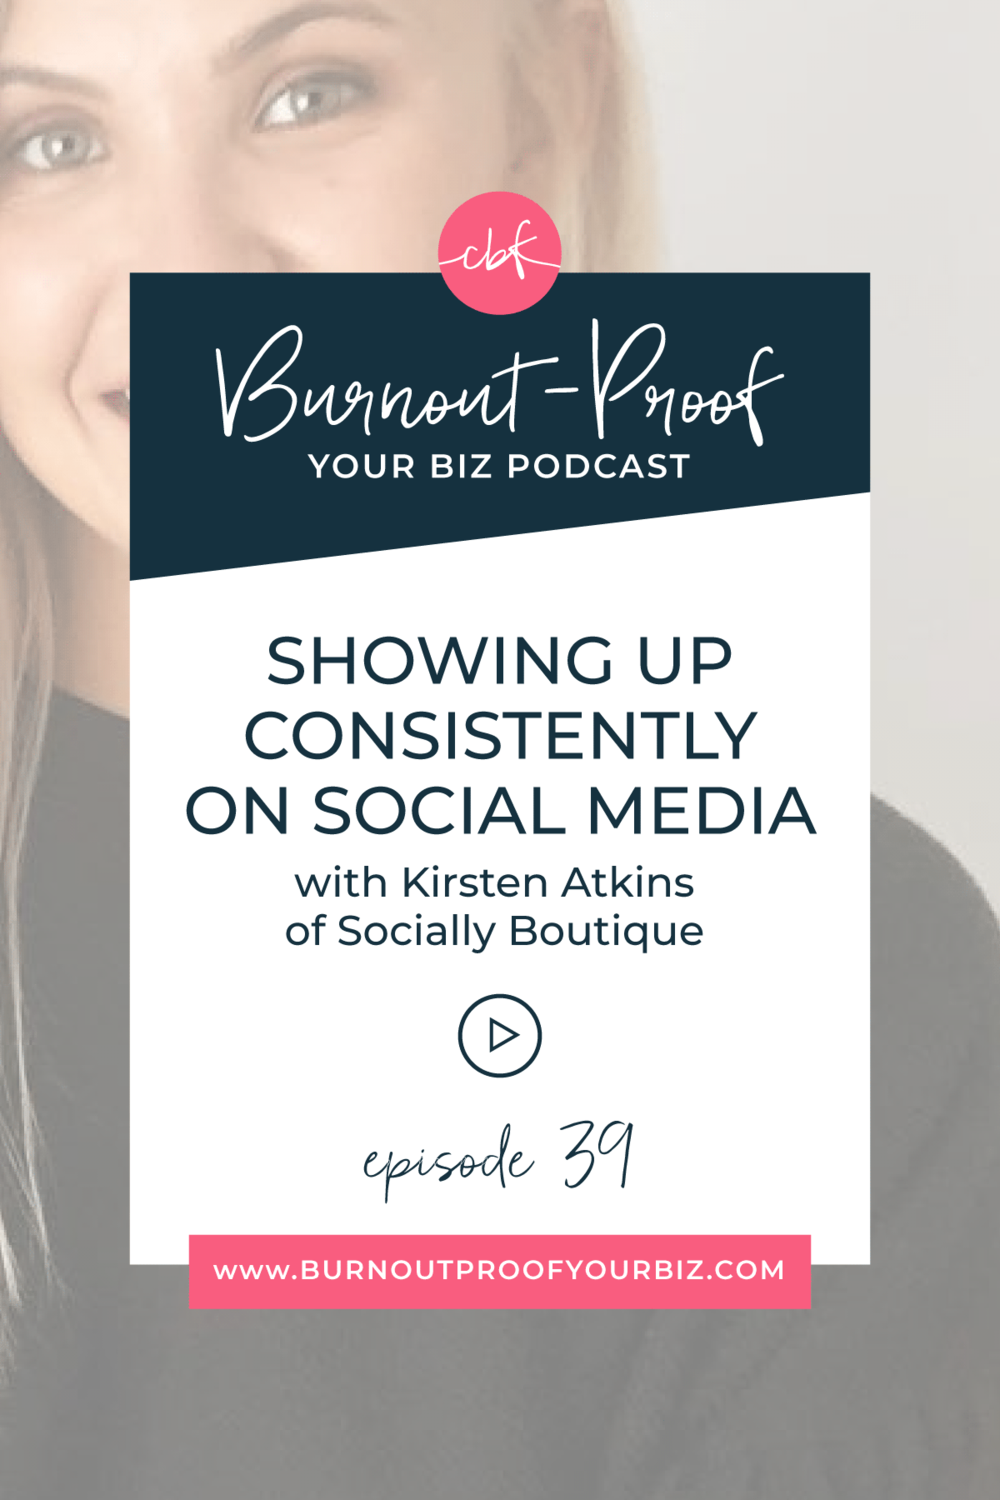 Burnout-Proof Your Biz Podcast with Chelsea B Foster | Episode 039 - Showing Up Consistently On Social Media with Kirsten Atkins of Socially Boutique | Learn how to run your biz and live your dream life on your own terms without the fear of burnout. || Social Media Marketing | Being Consistent | Consistent Social Media | Social Media Posts | Instagram Strategy | Facebook Strategy | Social Media Strategy | Productive Entrepreneur | Productivity | Workflows for Social Media